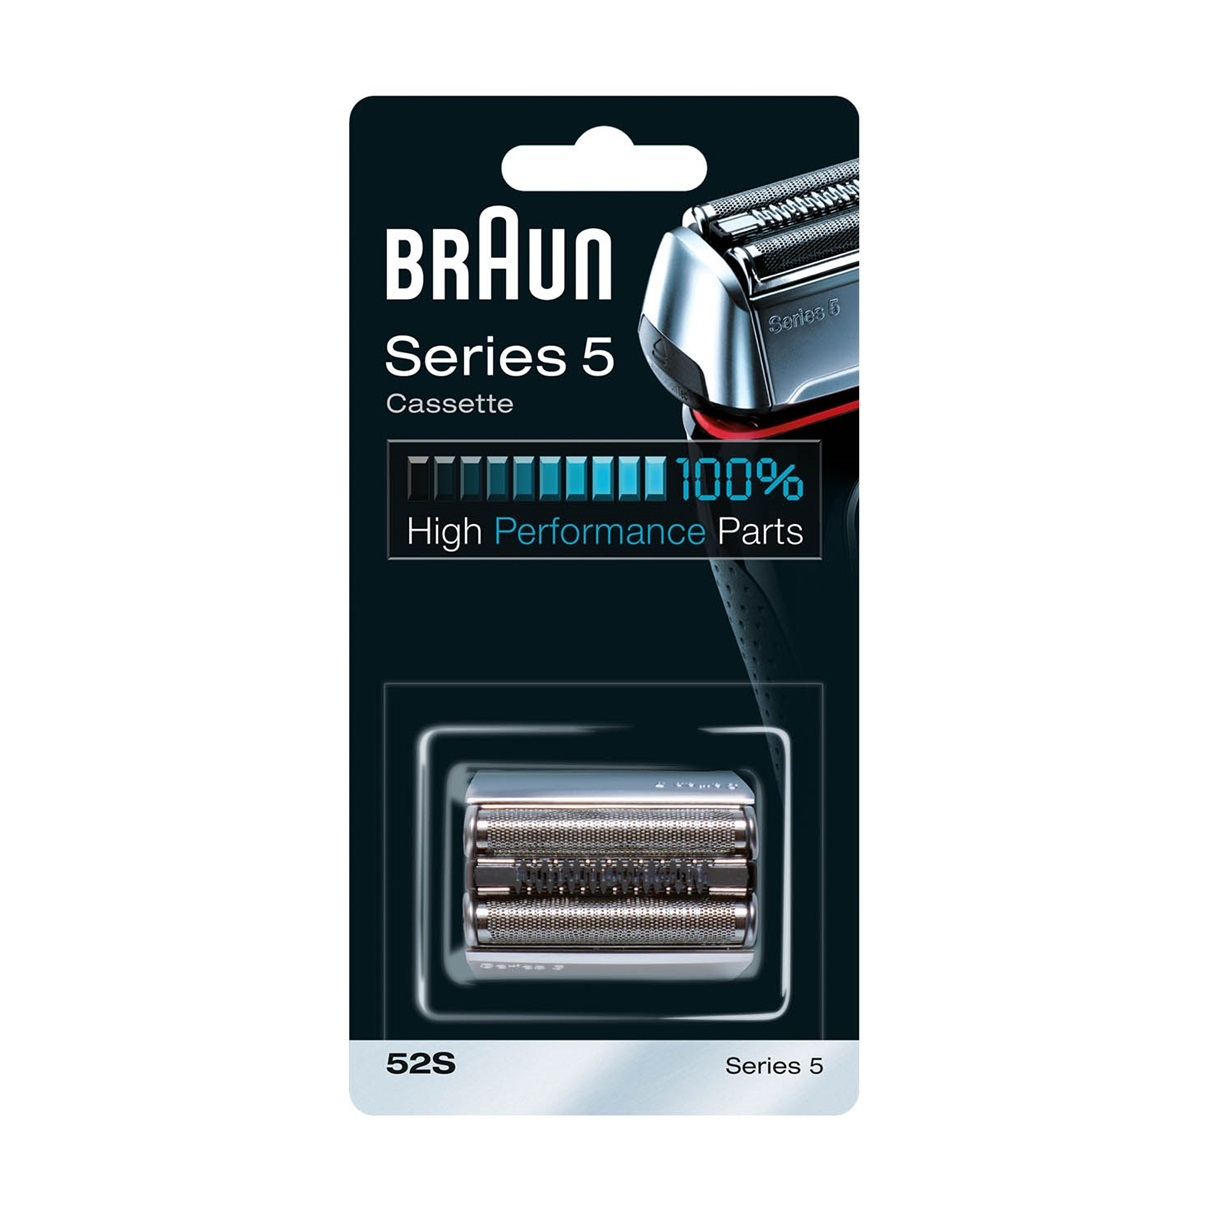 BRAUN Braun 52S replacement head silver / For Series 5 (new generation) [Free Sh